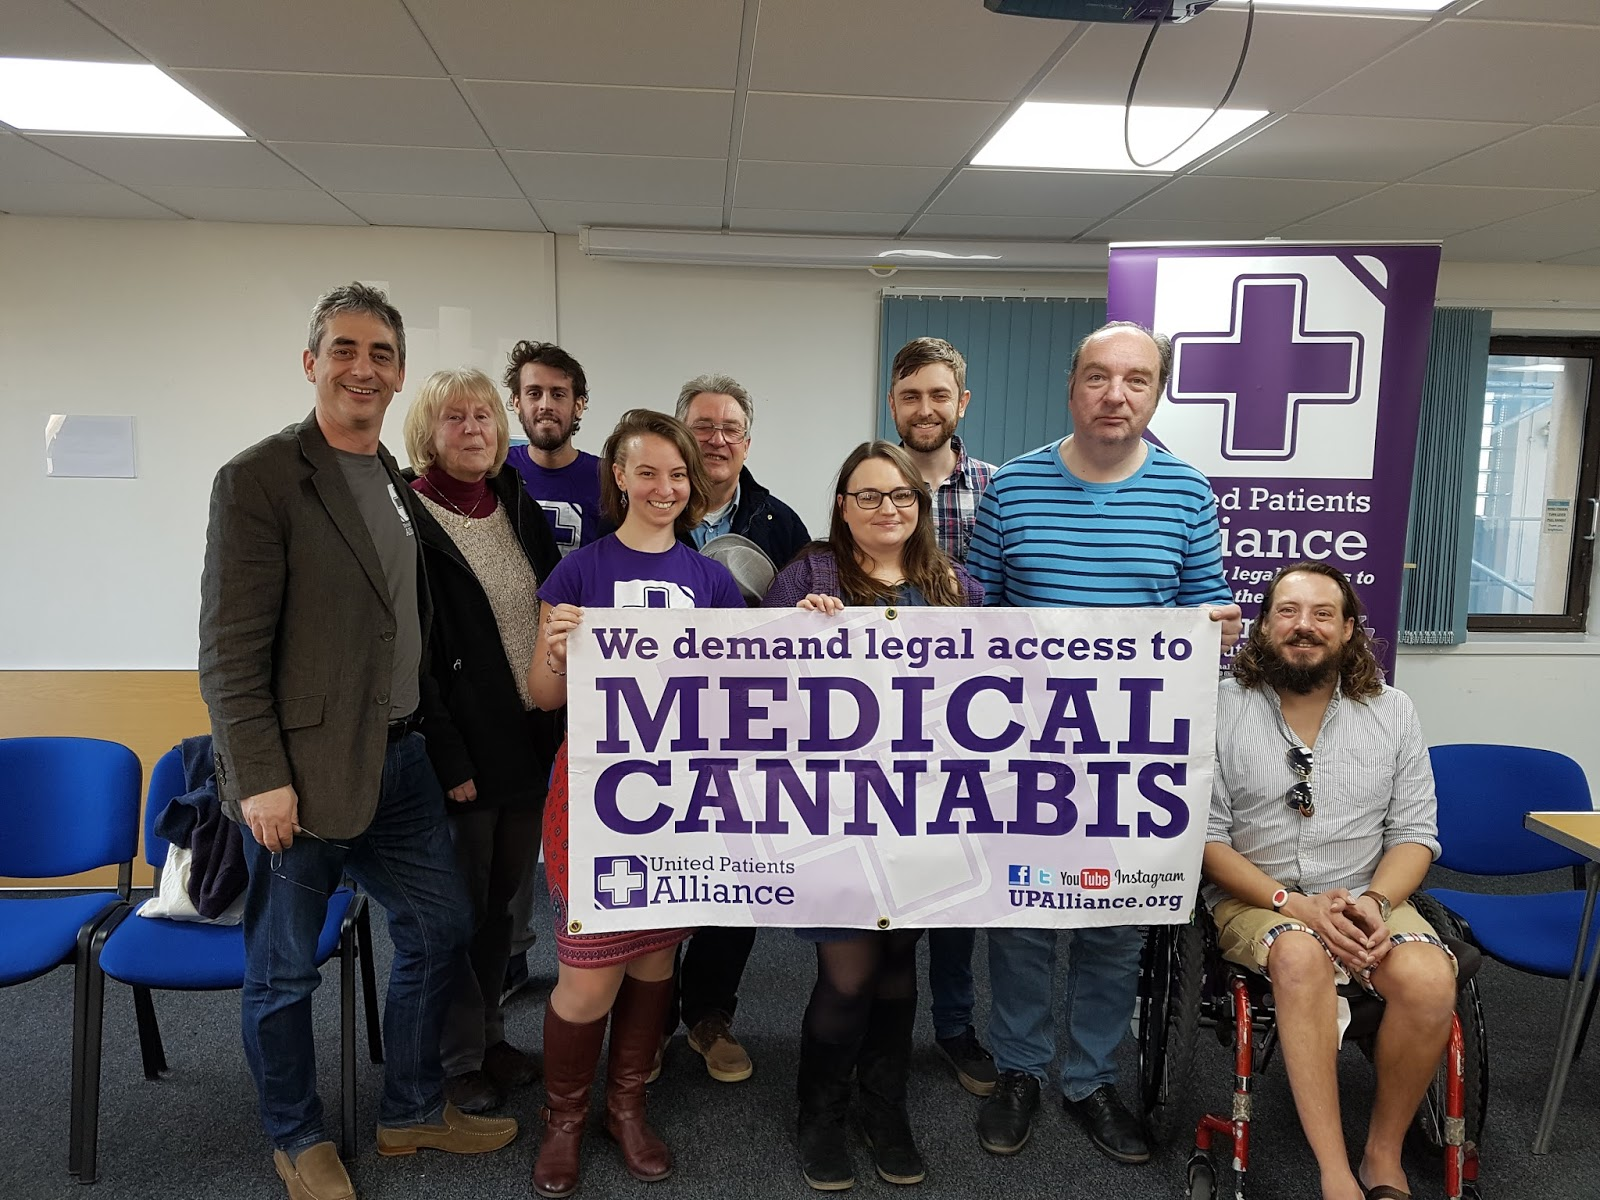 Cannabis Patients Alliance: Cannabis Is Medicine: PRESS RELEASE